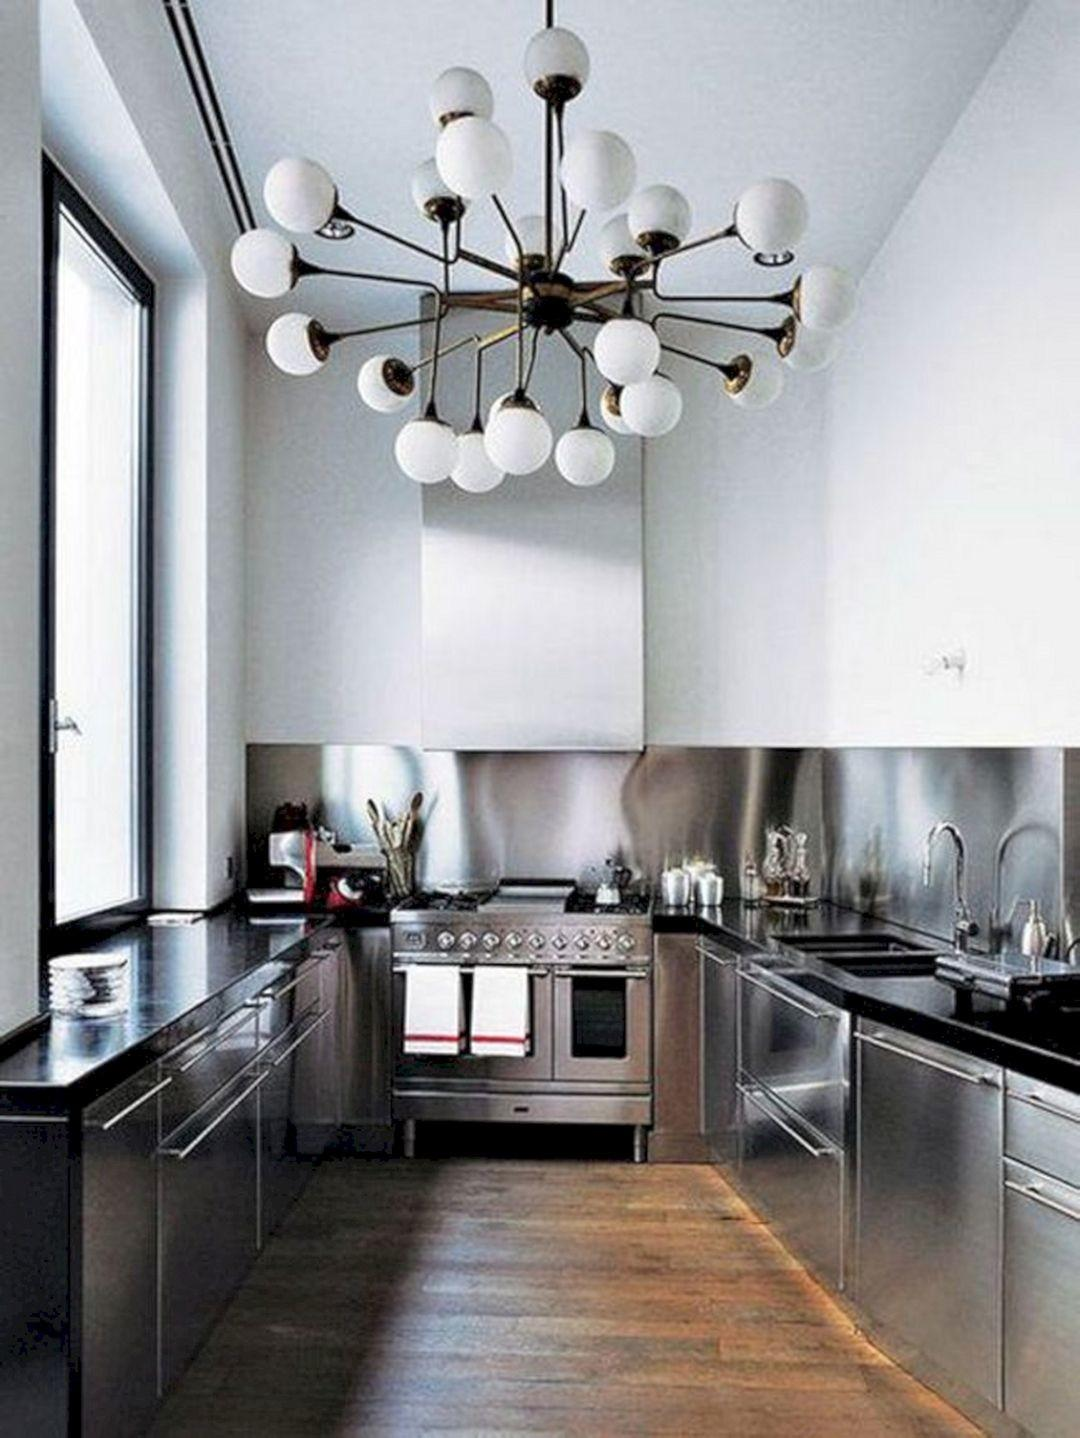 Industrial Home Kitchen Lighting Stainless Steel Spaces